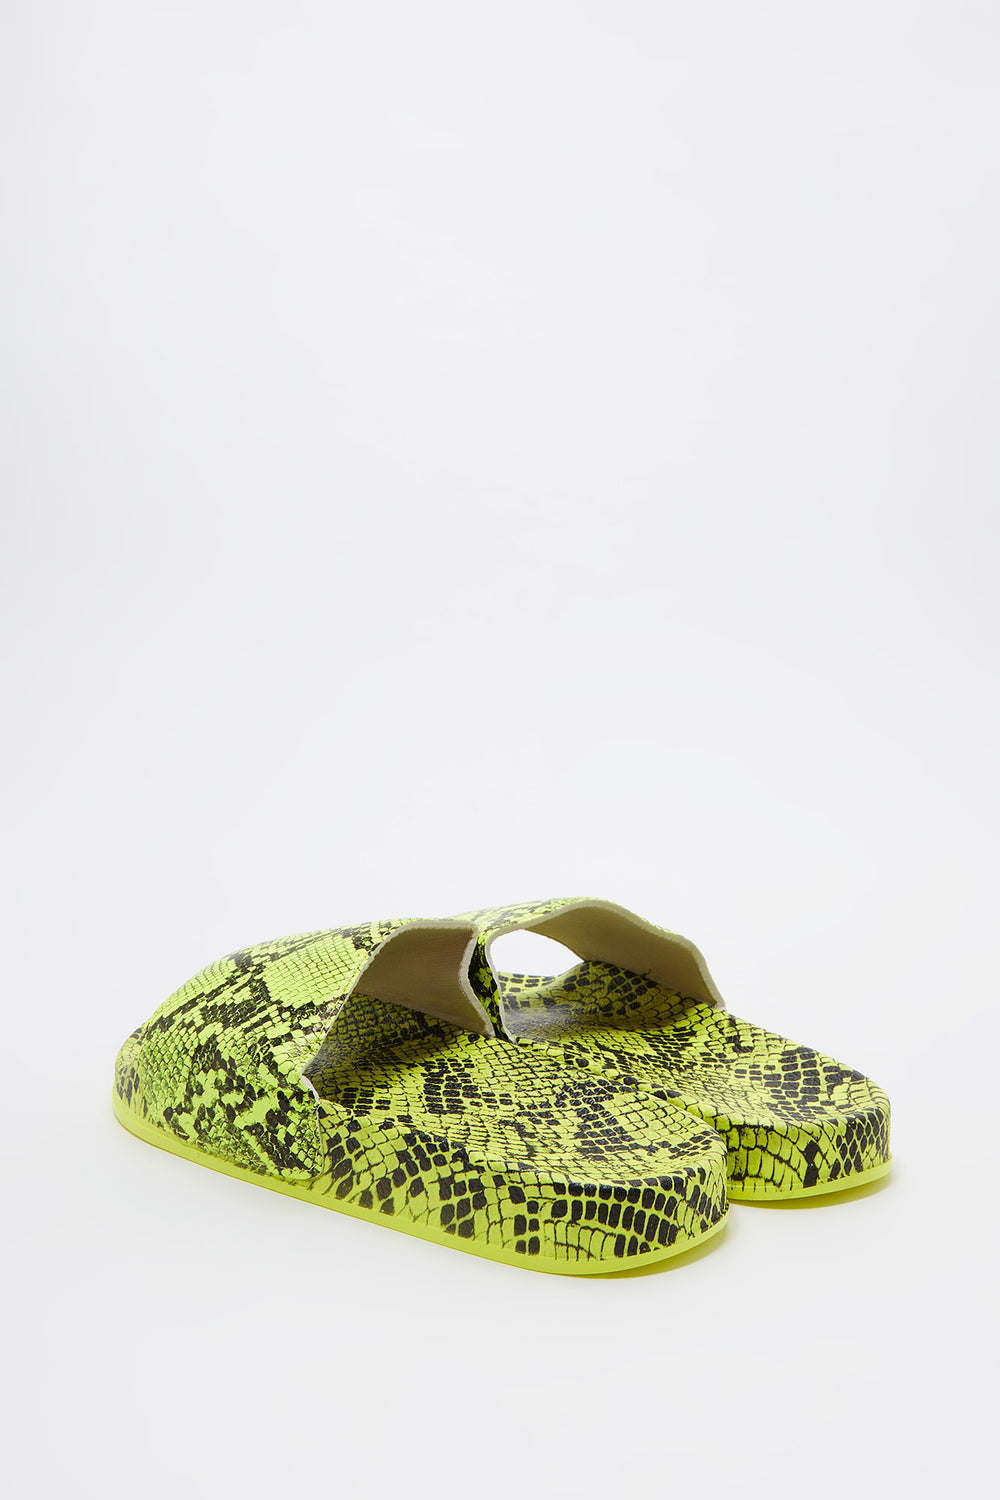 Snake Skin Slide Neon Yellow